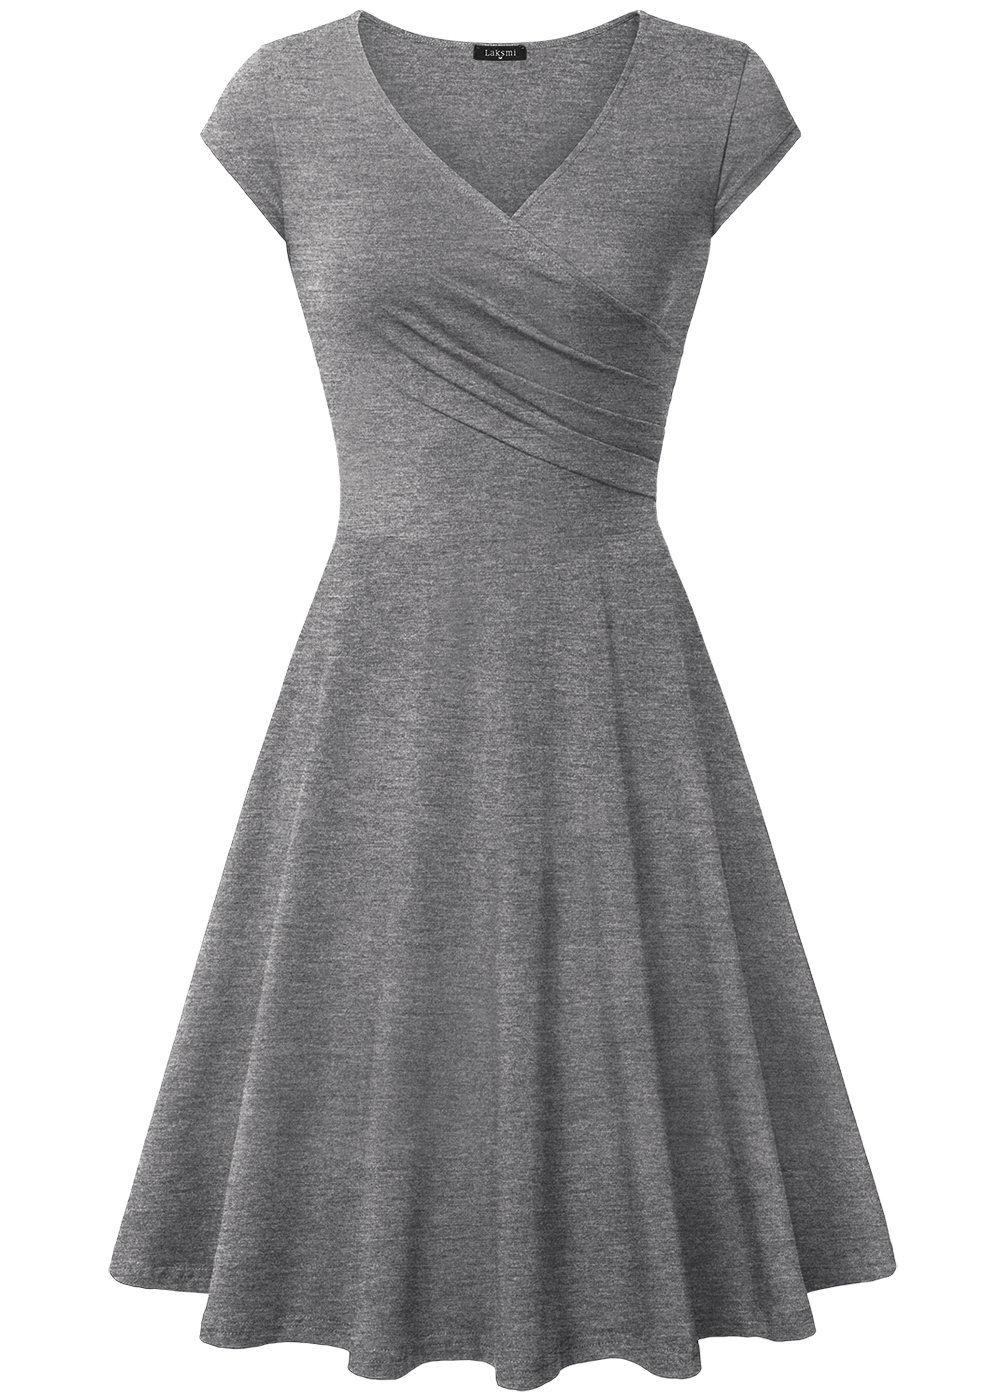 Laksmi Cocktail Dresses, Women's V Neck Urban Homecoming Informal Casual Dress,X-Large Dark Grey